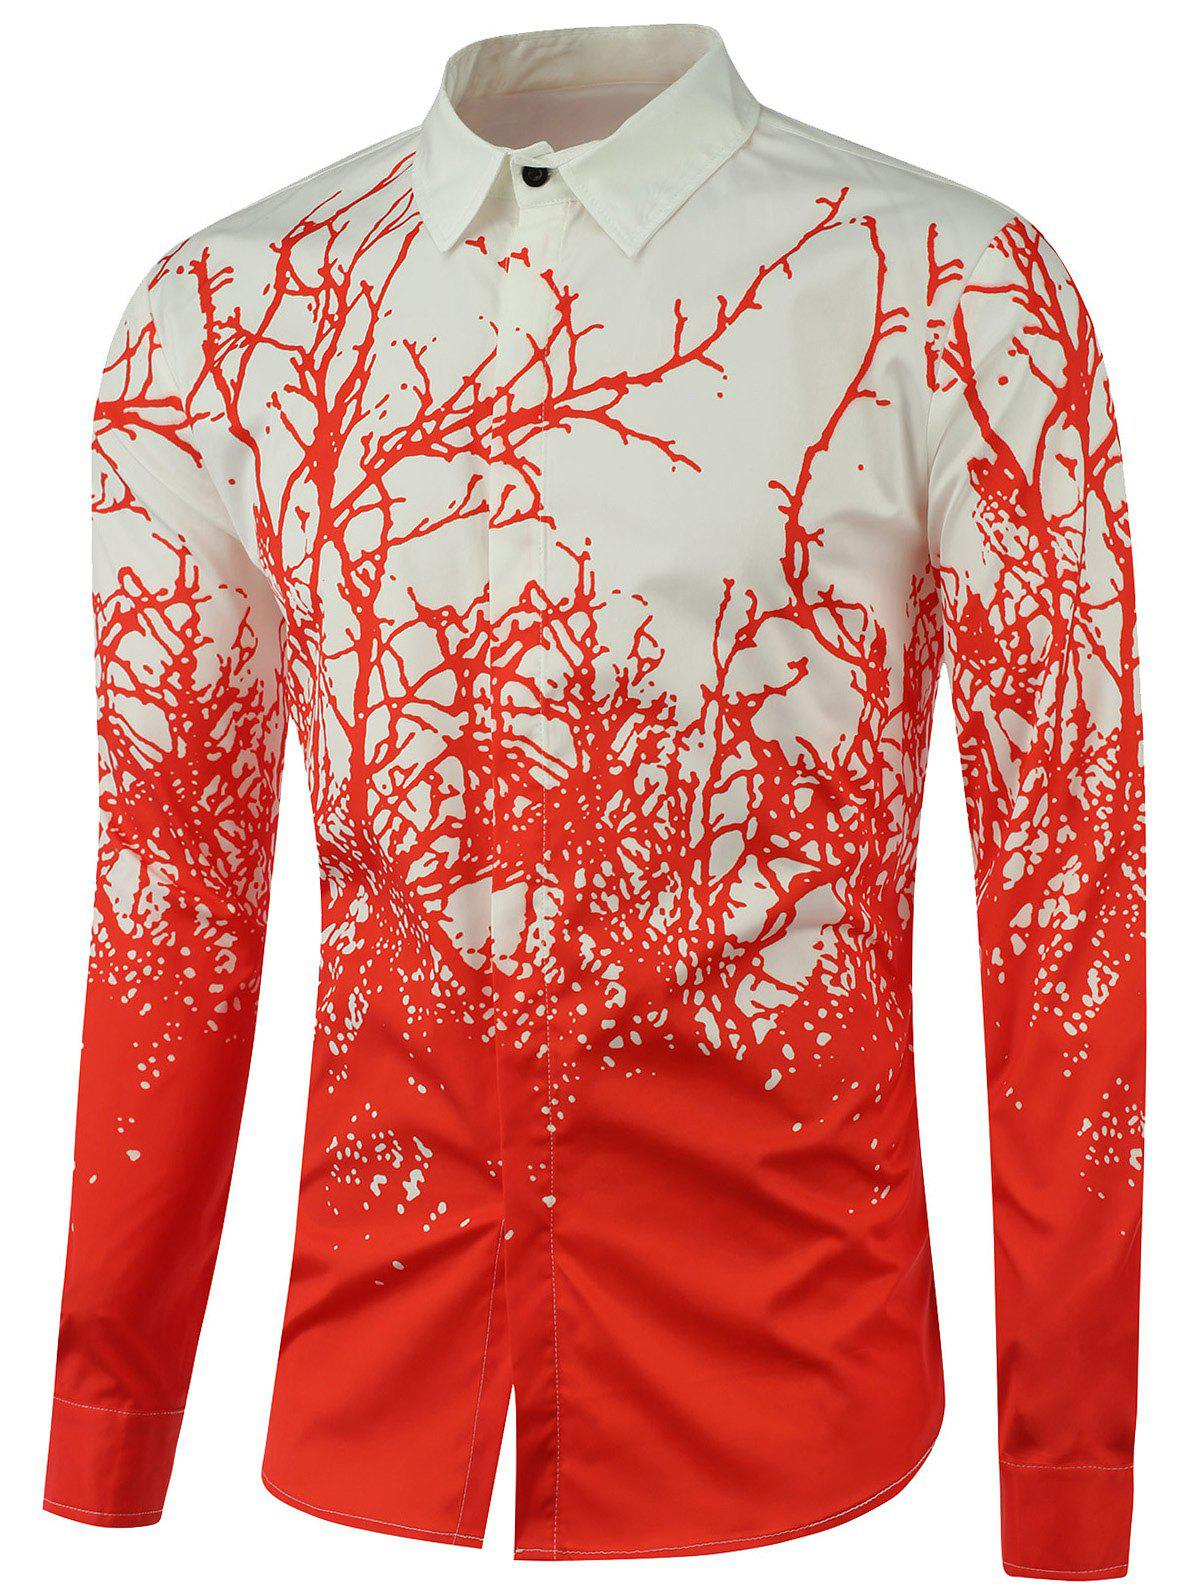 Tree Branch Printed Long Sleeve Shirt - RED M